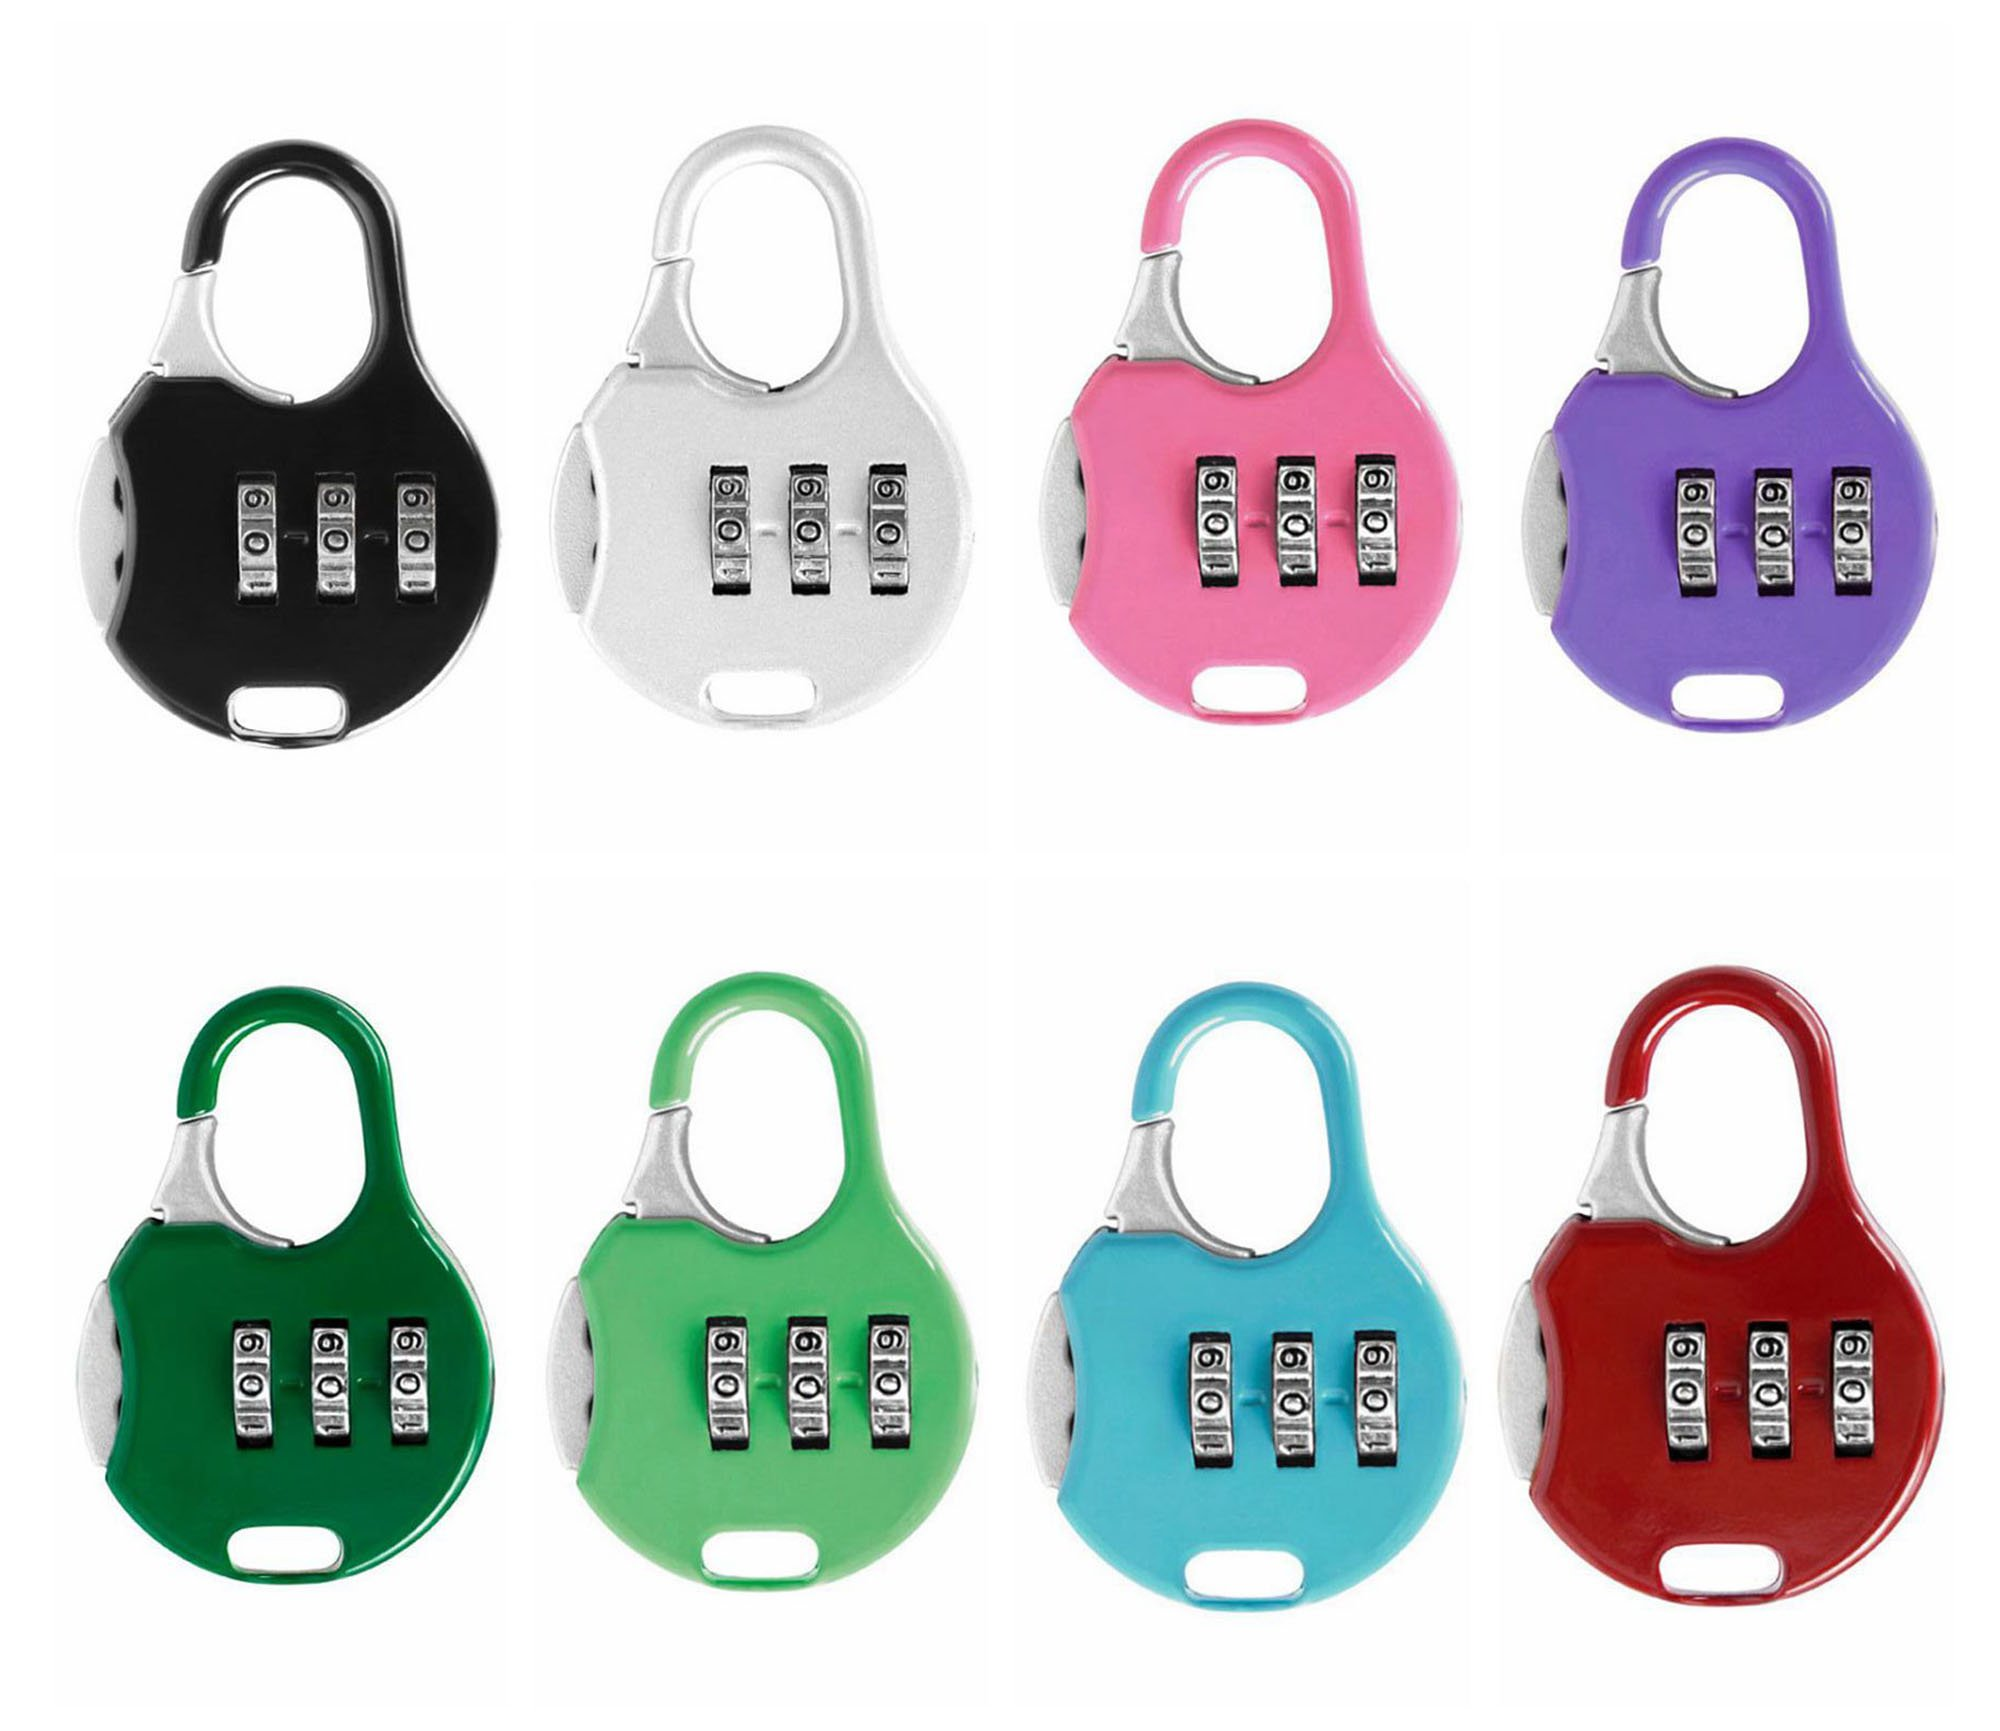 ZPLUST 3 Digit Combinations Padlock the Safe Cipher Lock Resettable Code Lock , Color Locks (7Pack) by ZPLIUST